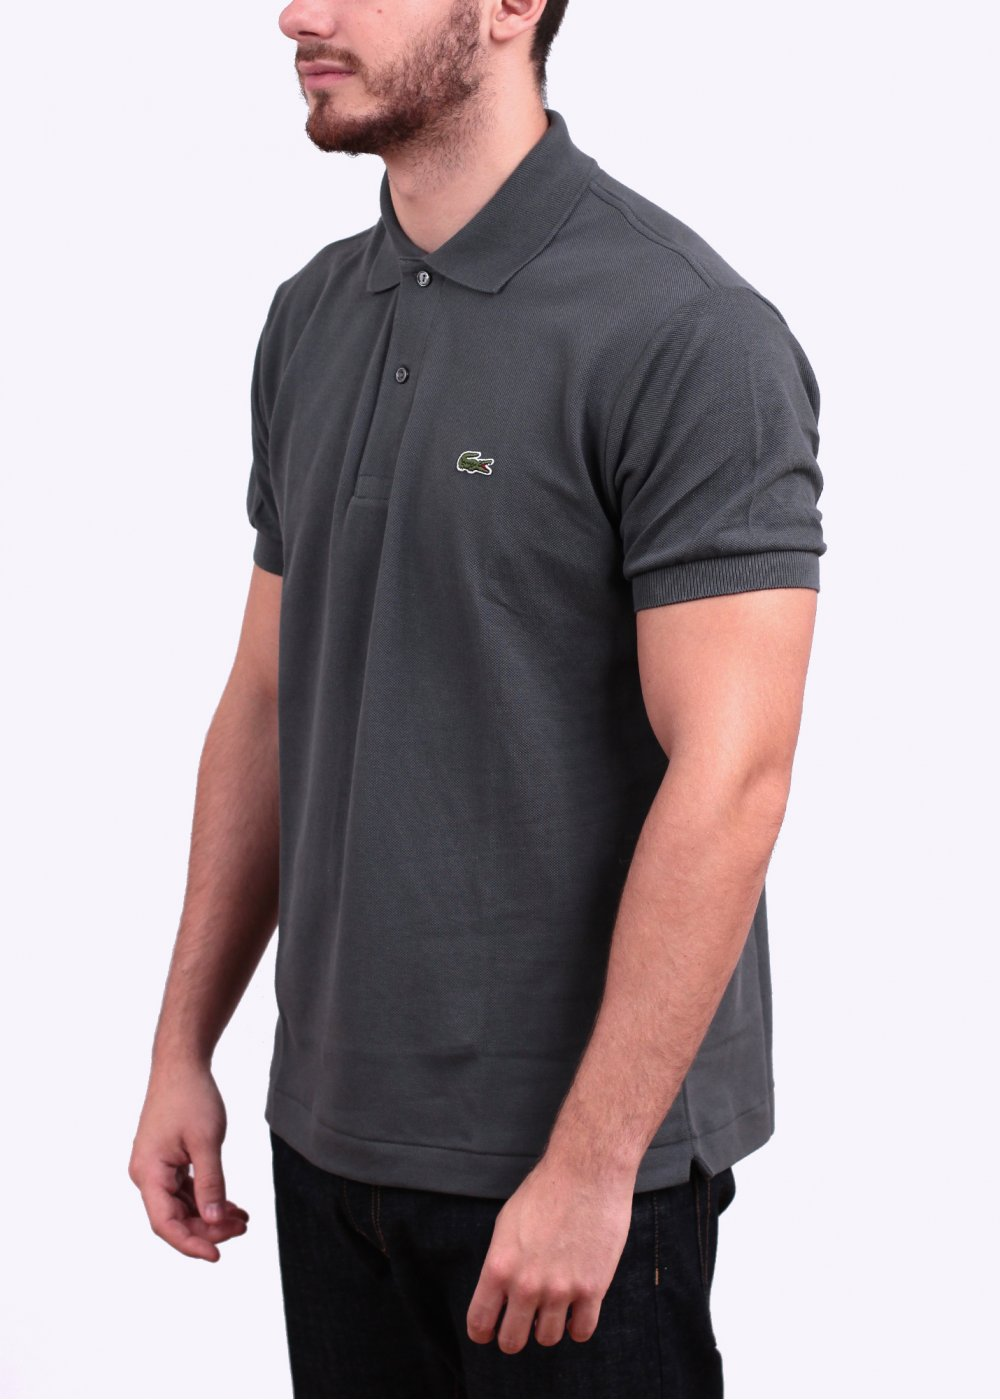 lacoste short sleeve logo polo shirt dark grey